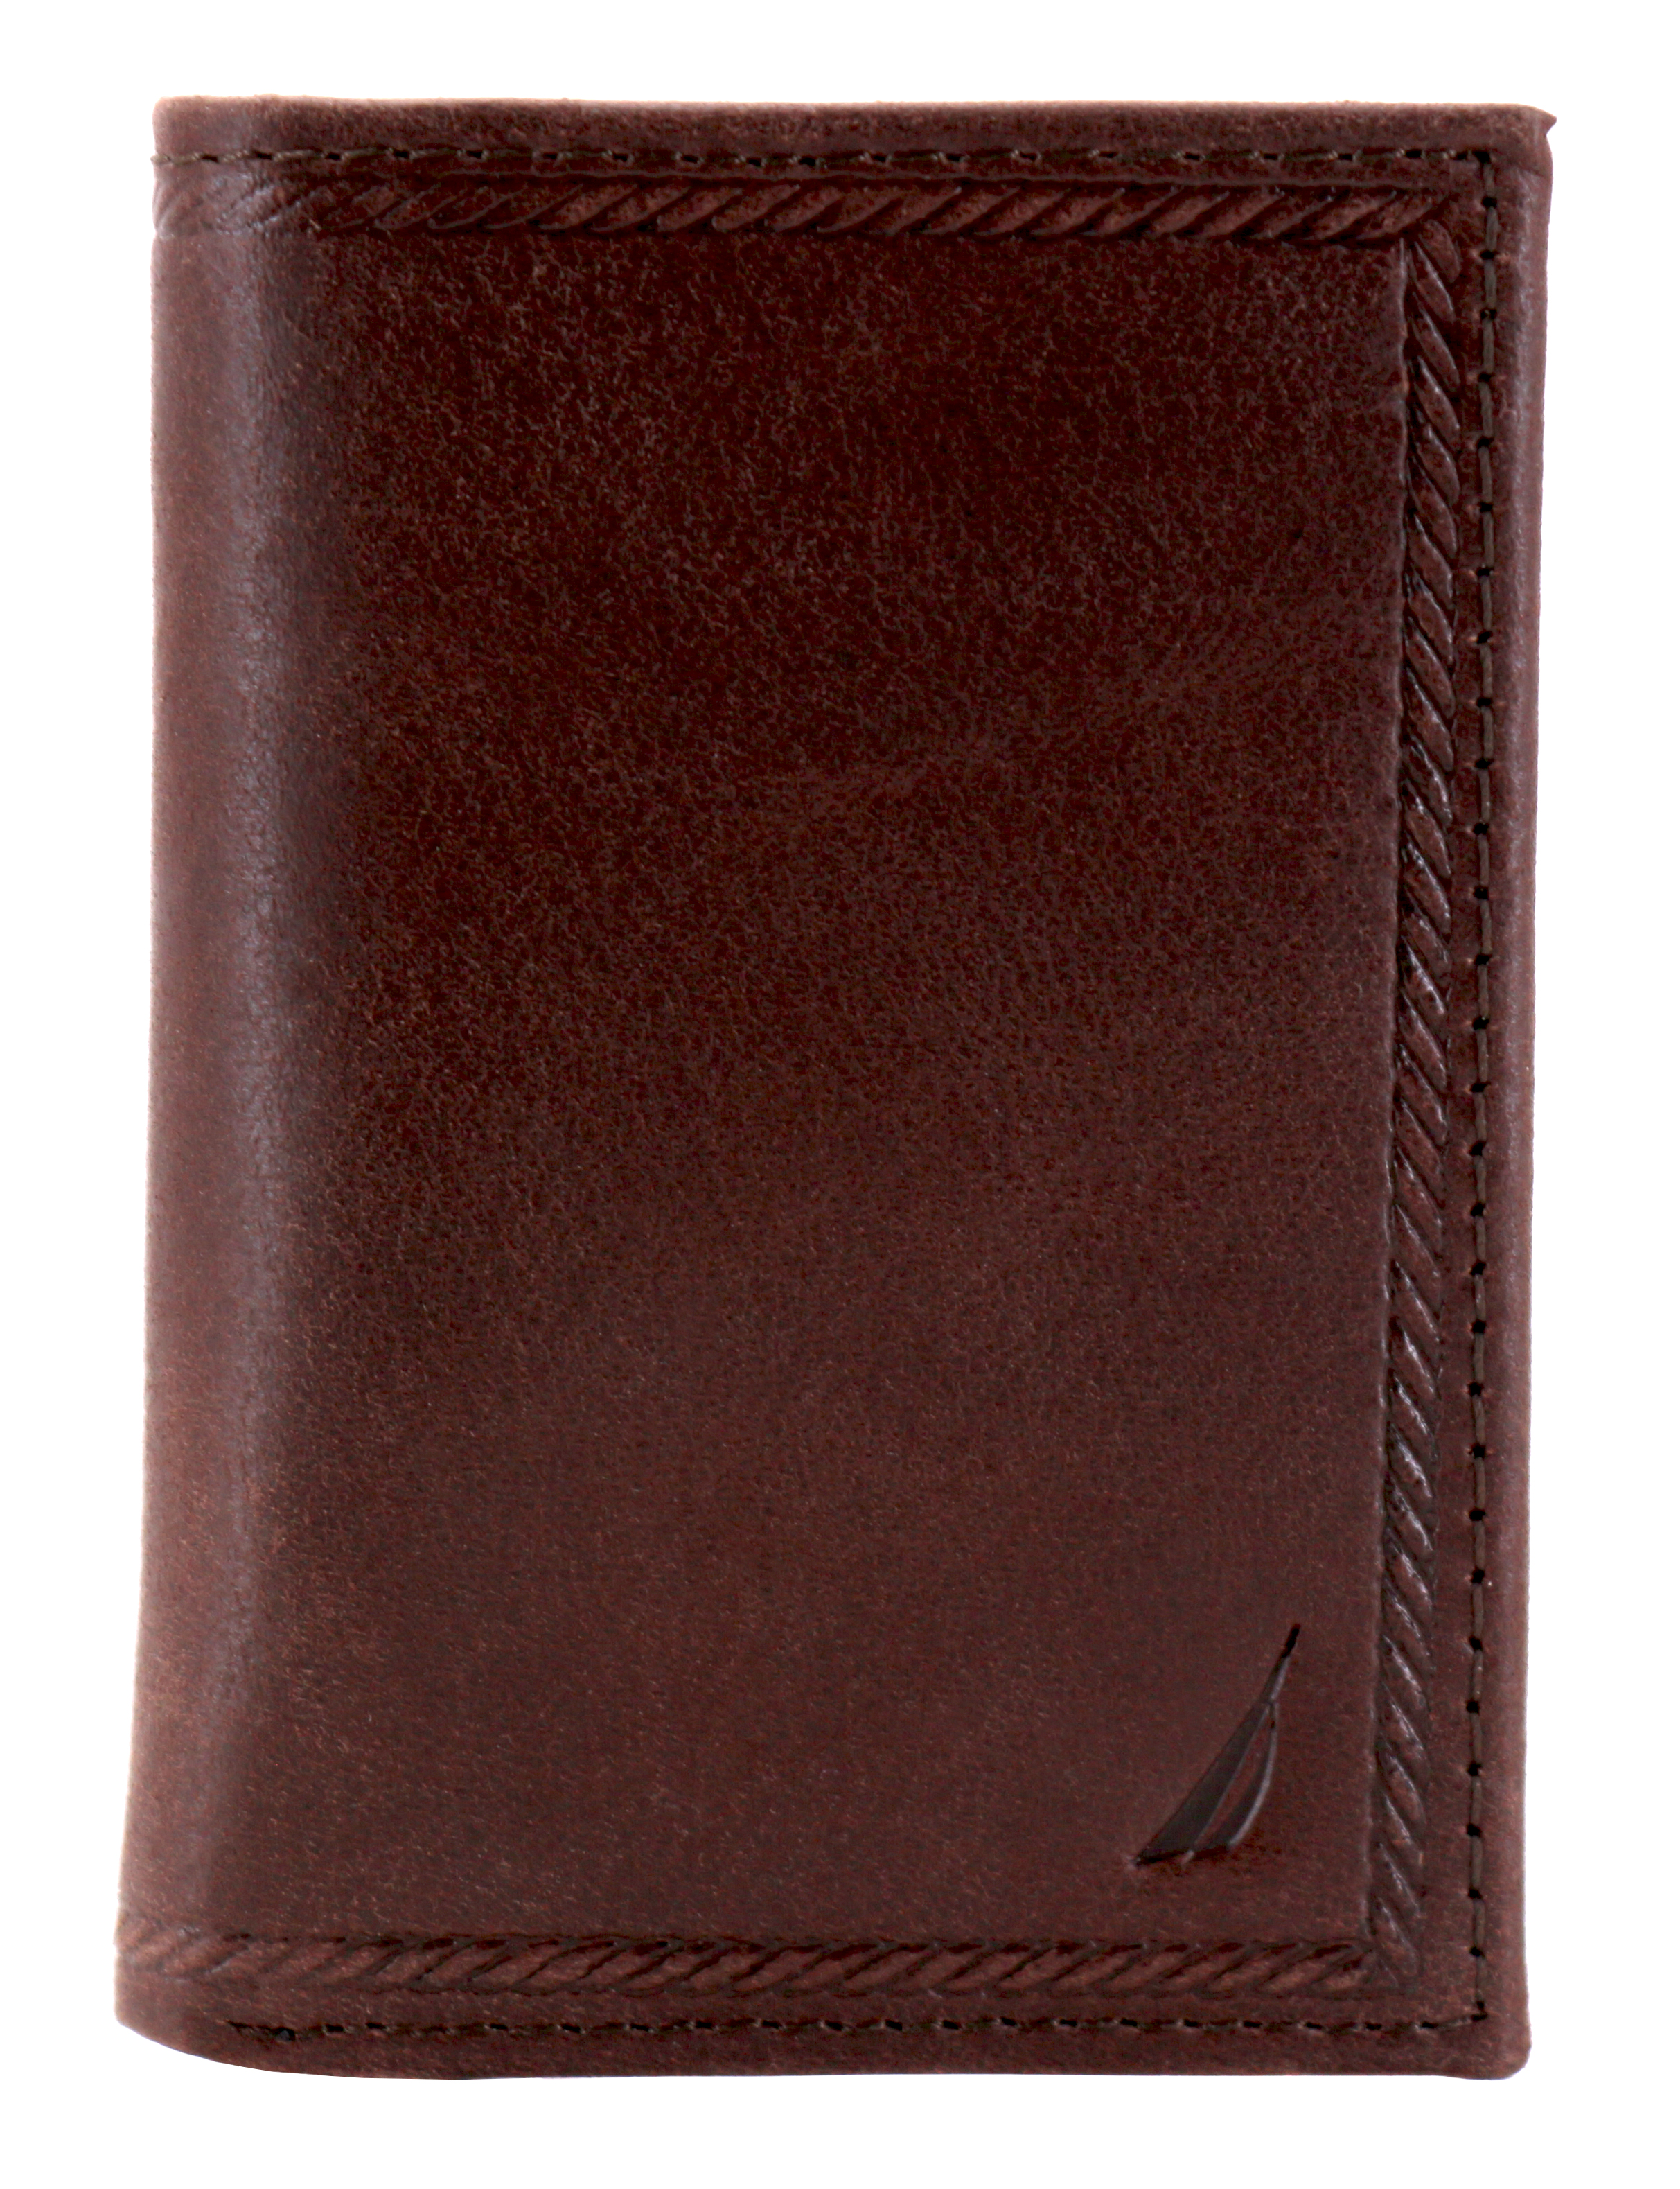 Nautica-Men-039-s-Genuine-Vintage-Leather-Credit-Card-Id-Trifold-Wallet thumbnail 12